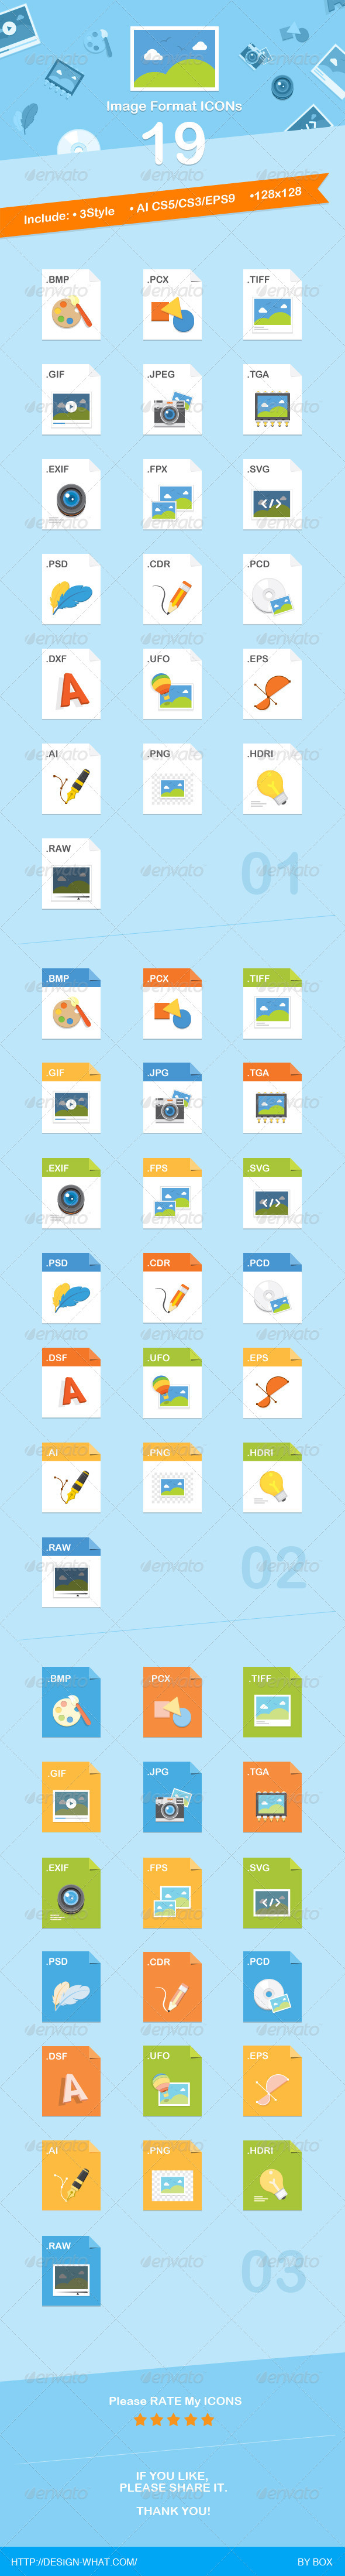 GraphicRiver 19 Image Format Icons 6938526